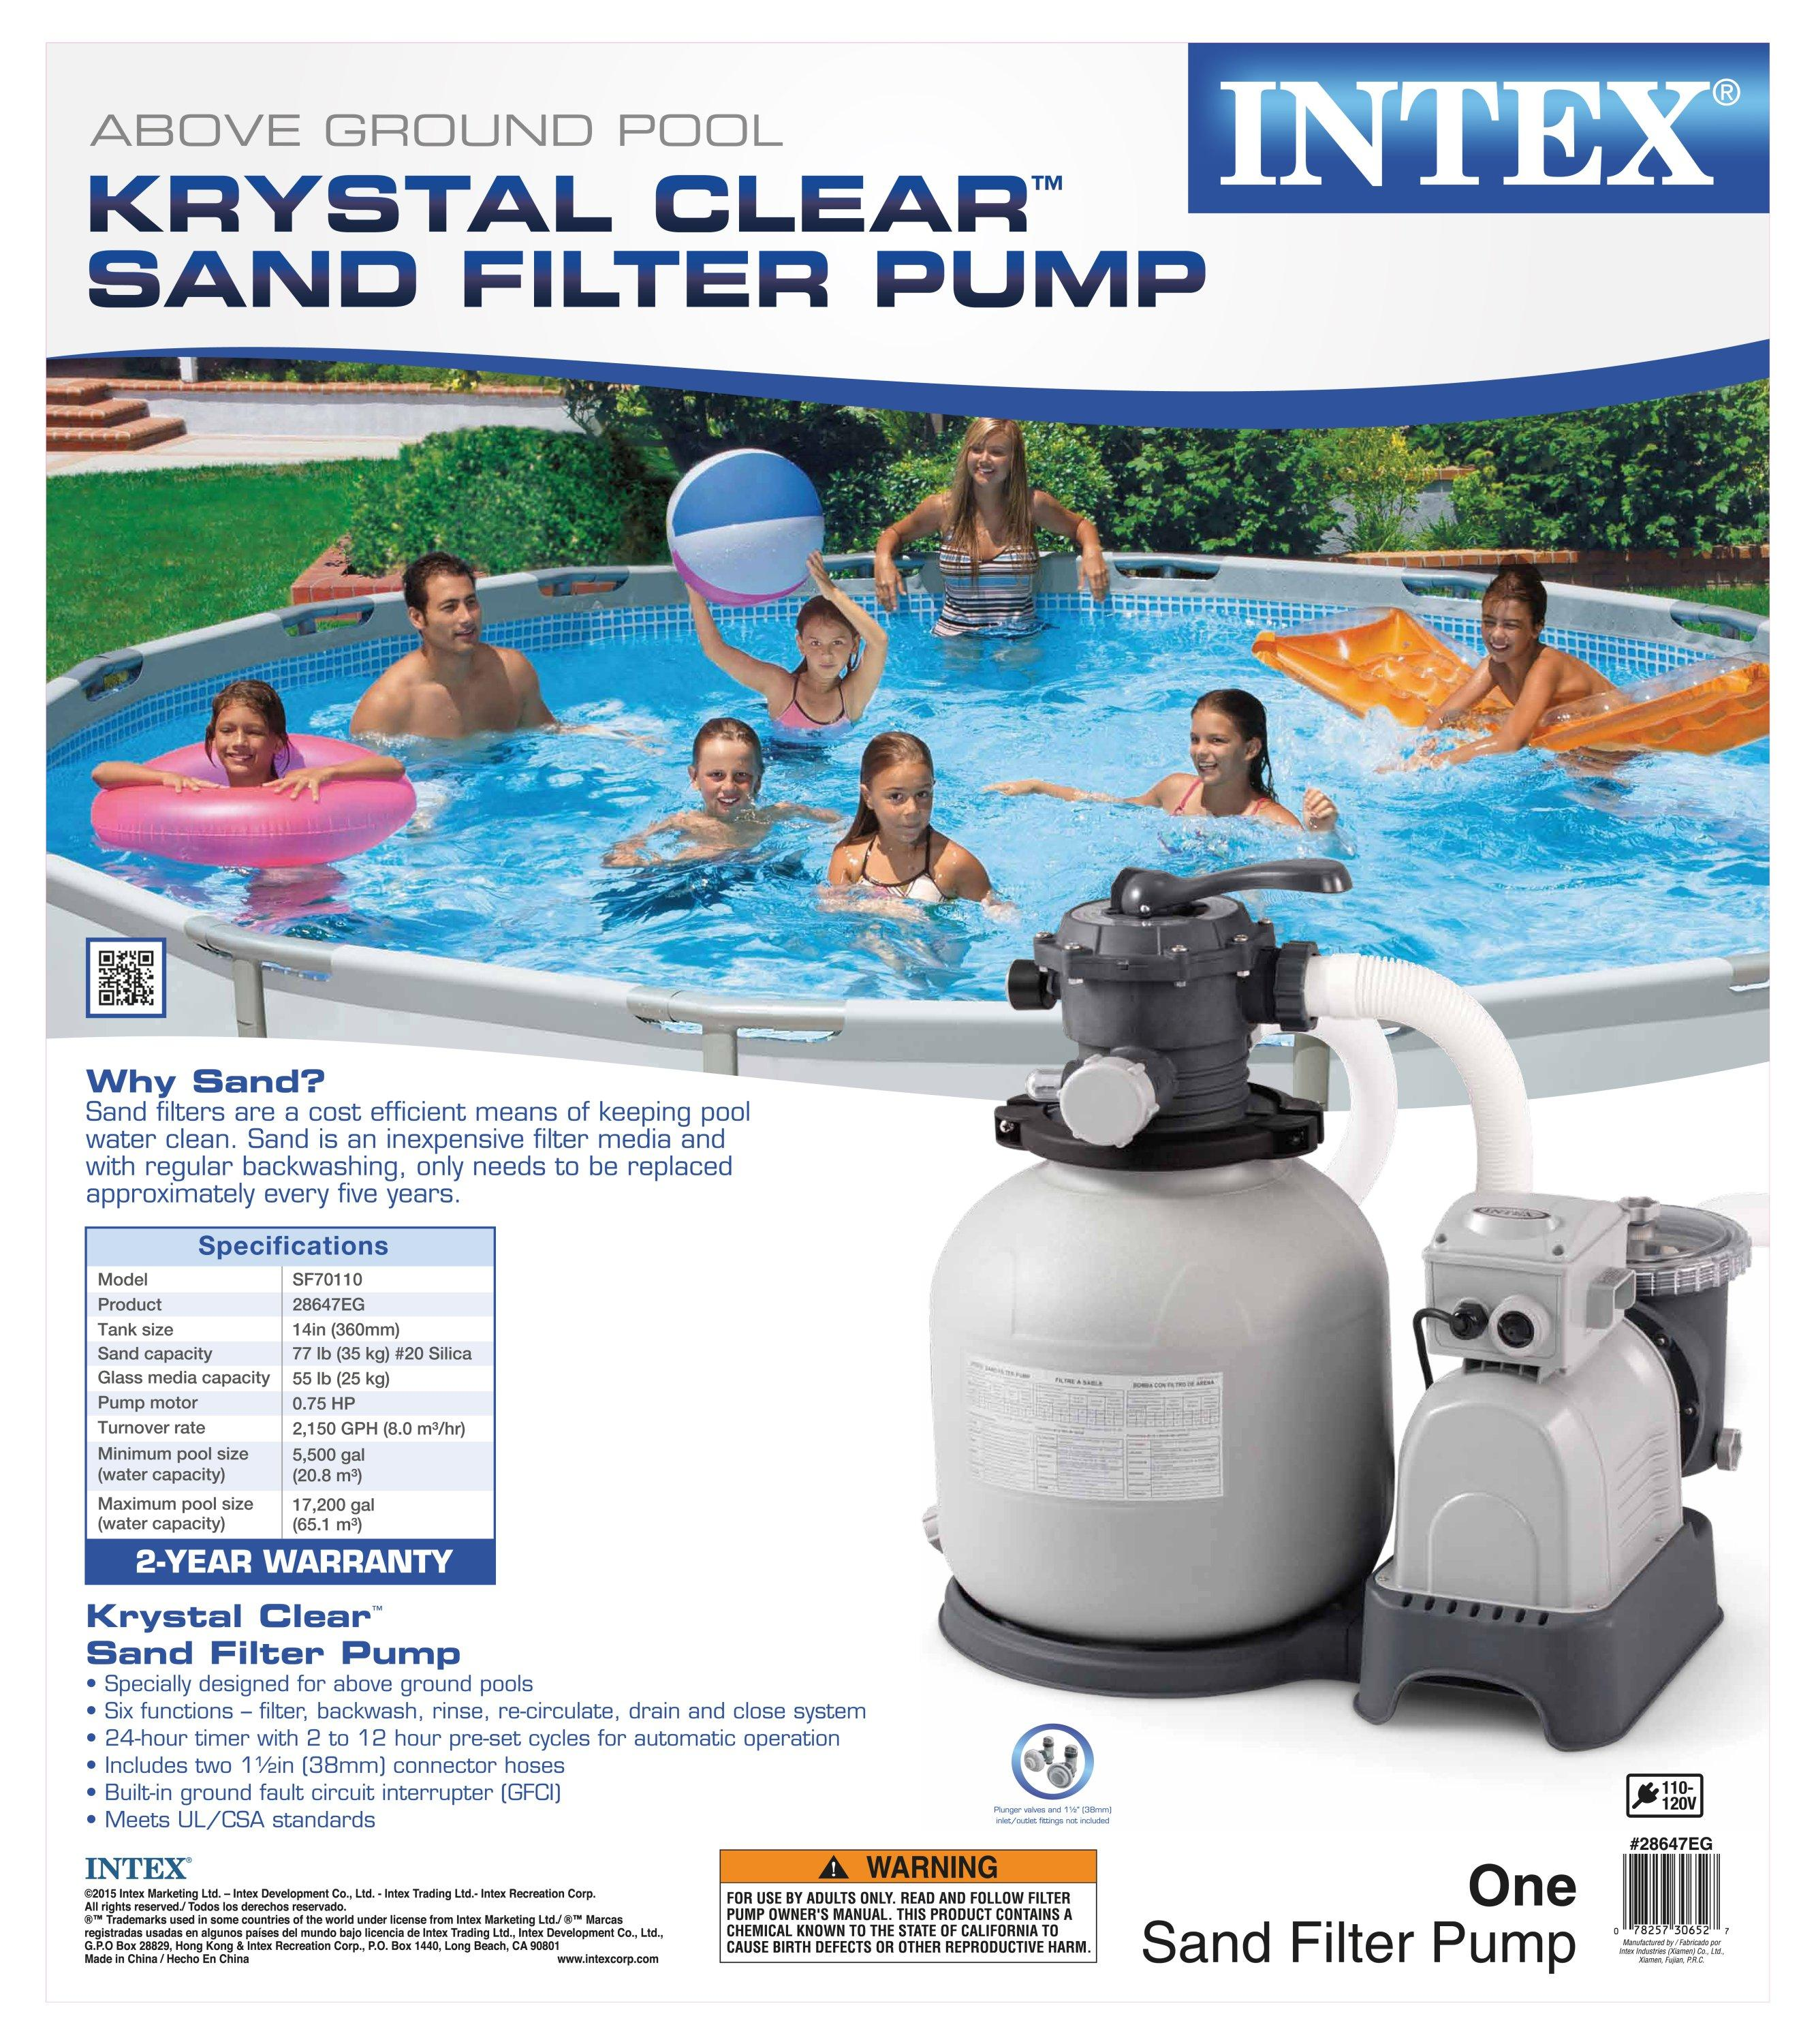 Intex Krystal Clear Sand Filter Pump For Above Ground Pools 2800 Gph Pump Flow